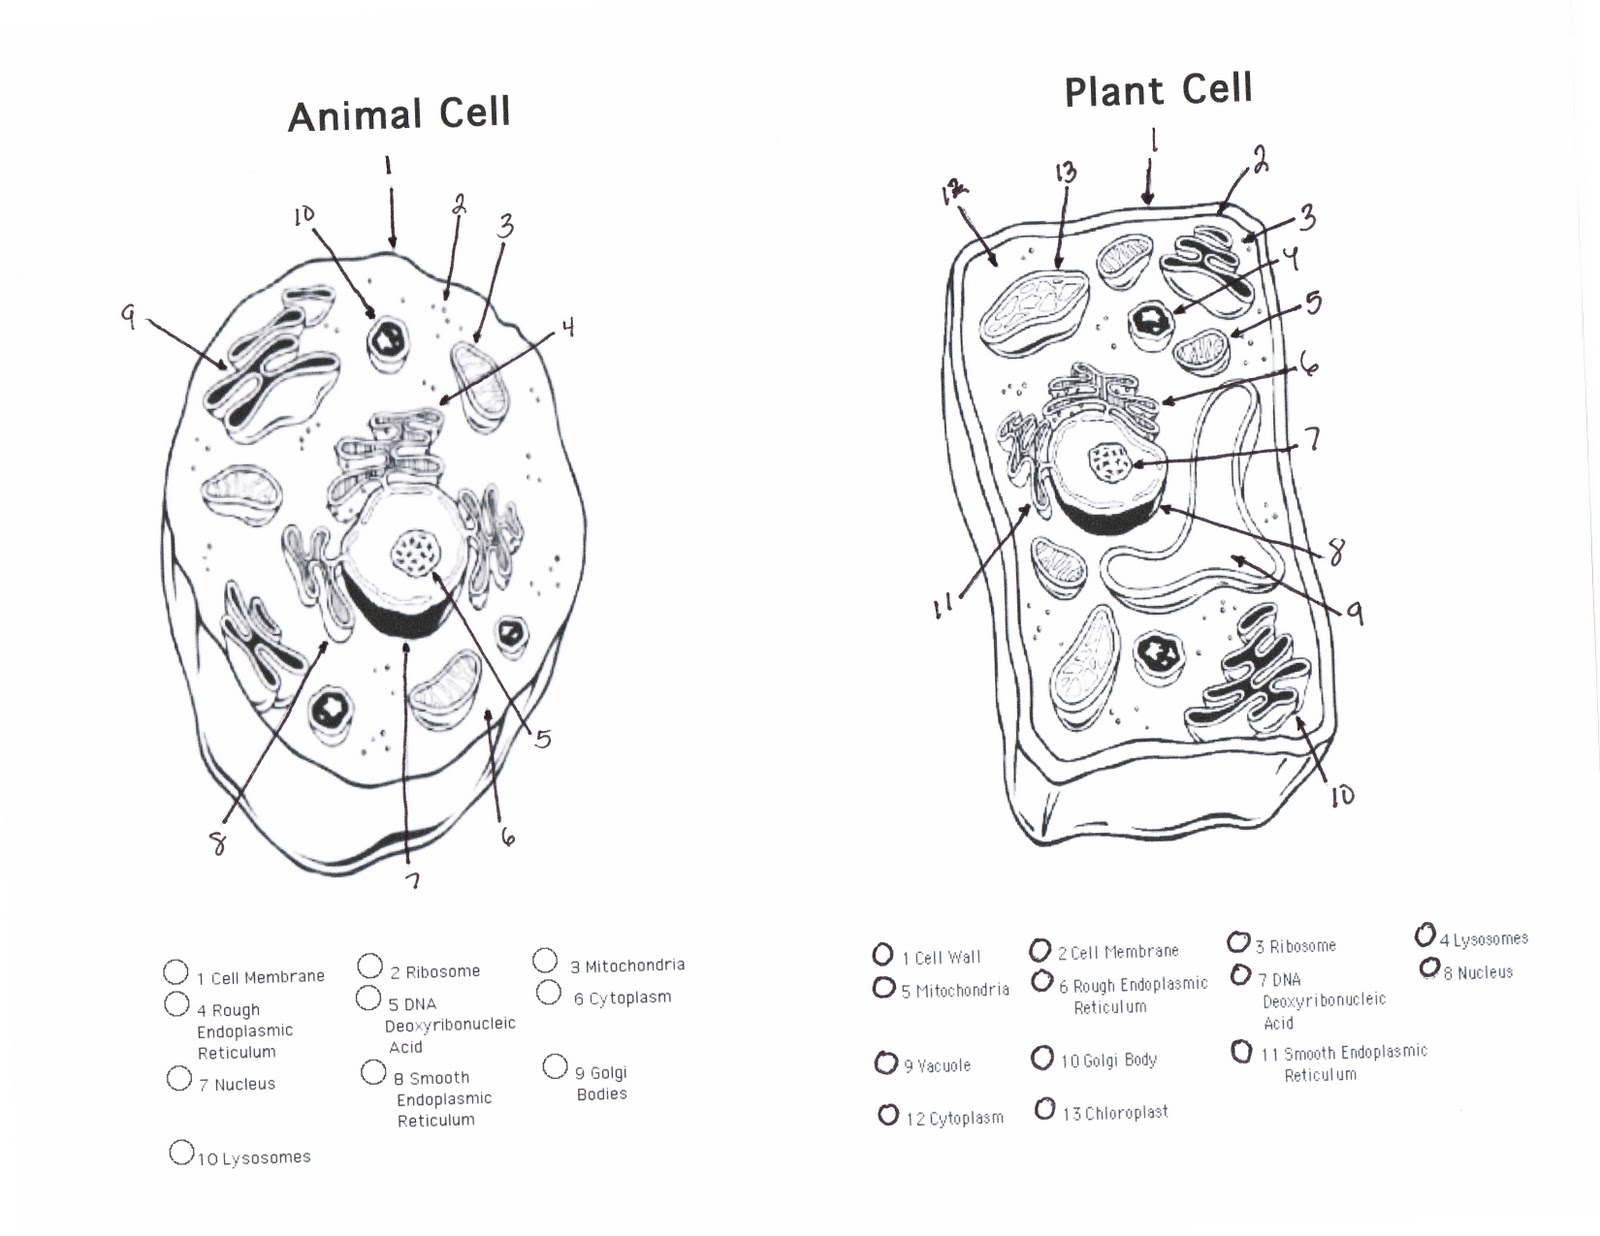 Worksheets Plant And Animal Cells Worksheets animal and plant cell worksheet free worksheets library download 1000 images about cells on pinterest velvet